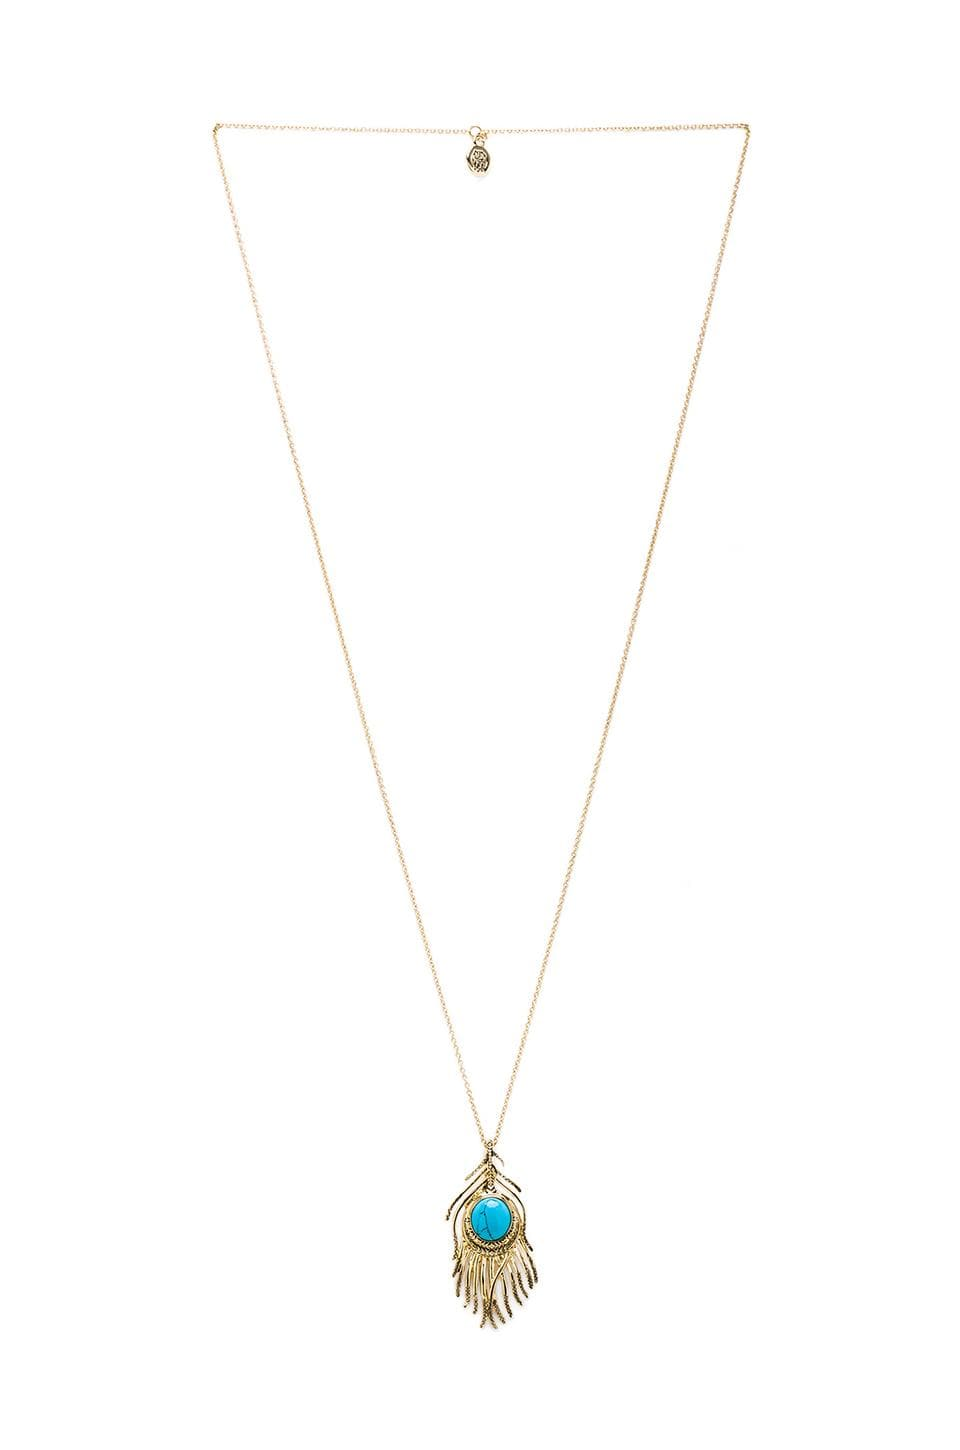 House of Harlow 1960 House of Harlow Eye of Wisdom Pendant necklace in Gold Turquoise